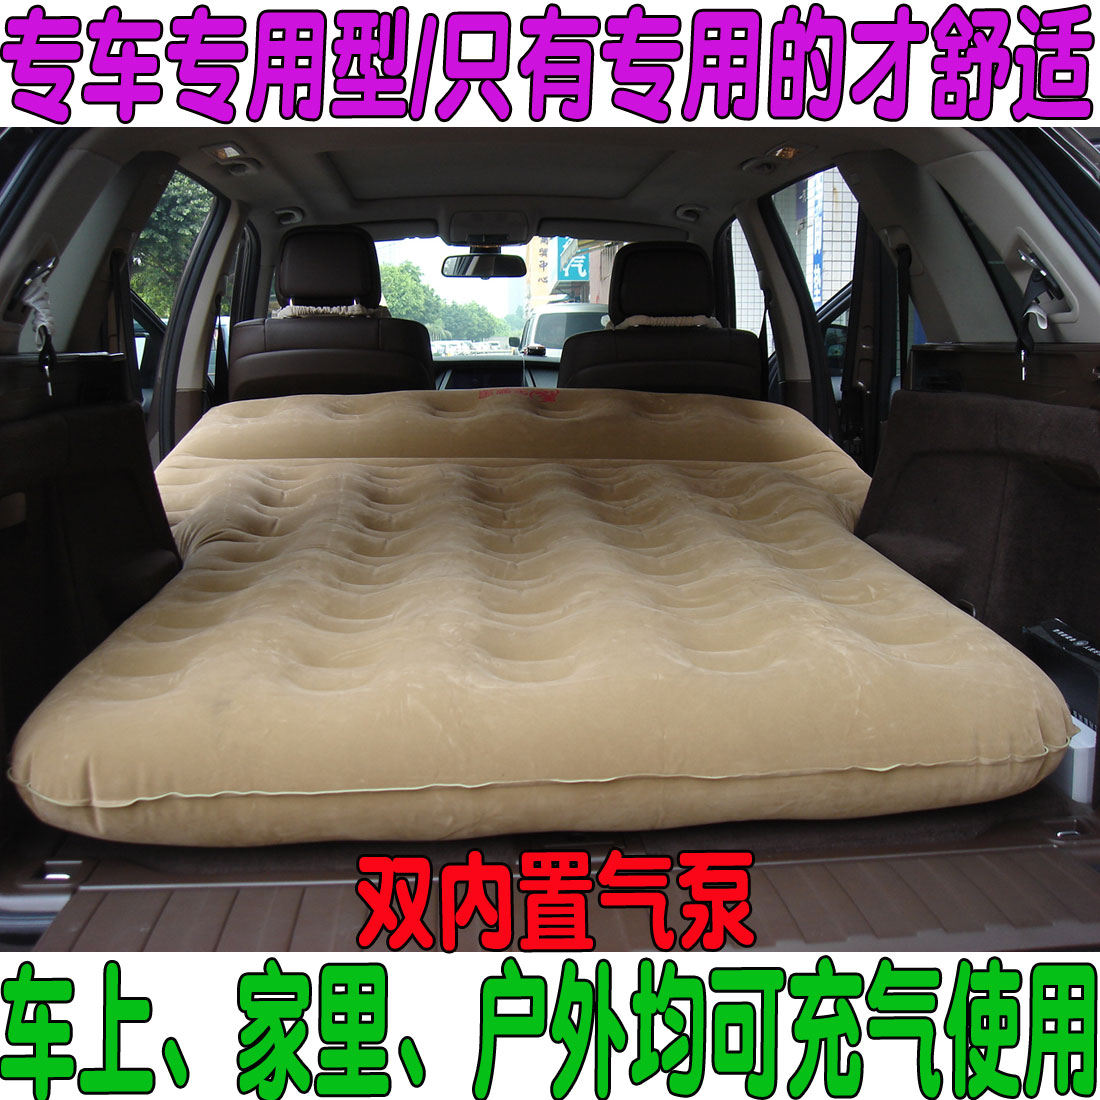 Golf BlueMotion vehicle inflatable bed vehicle air cushion bed car travel bed SUV car car bed bed bed